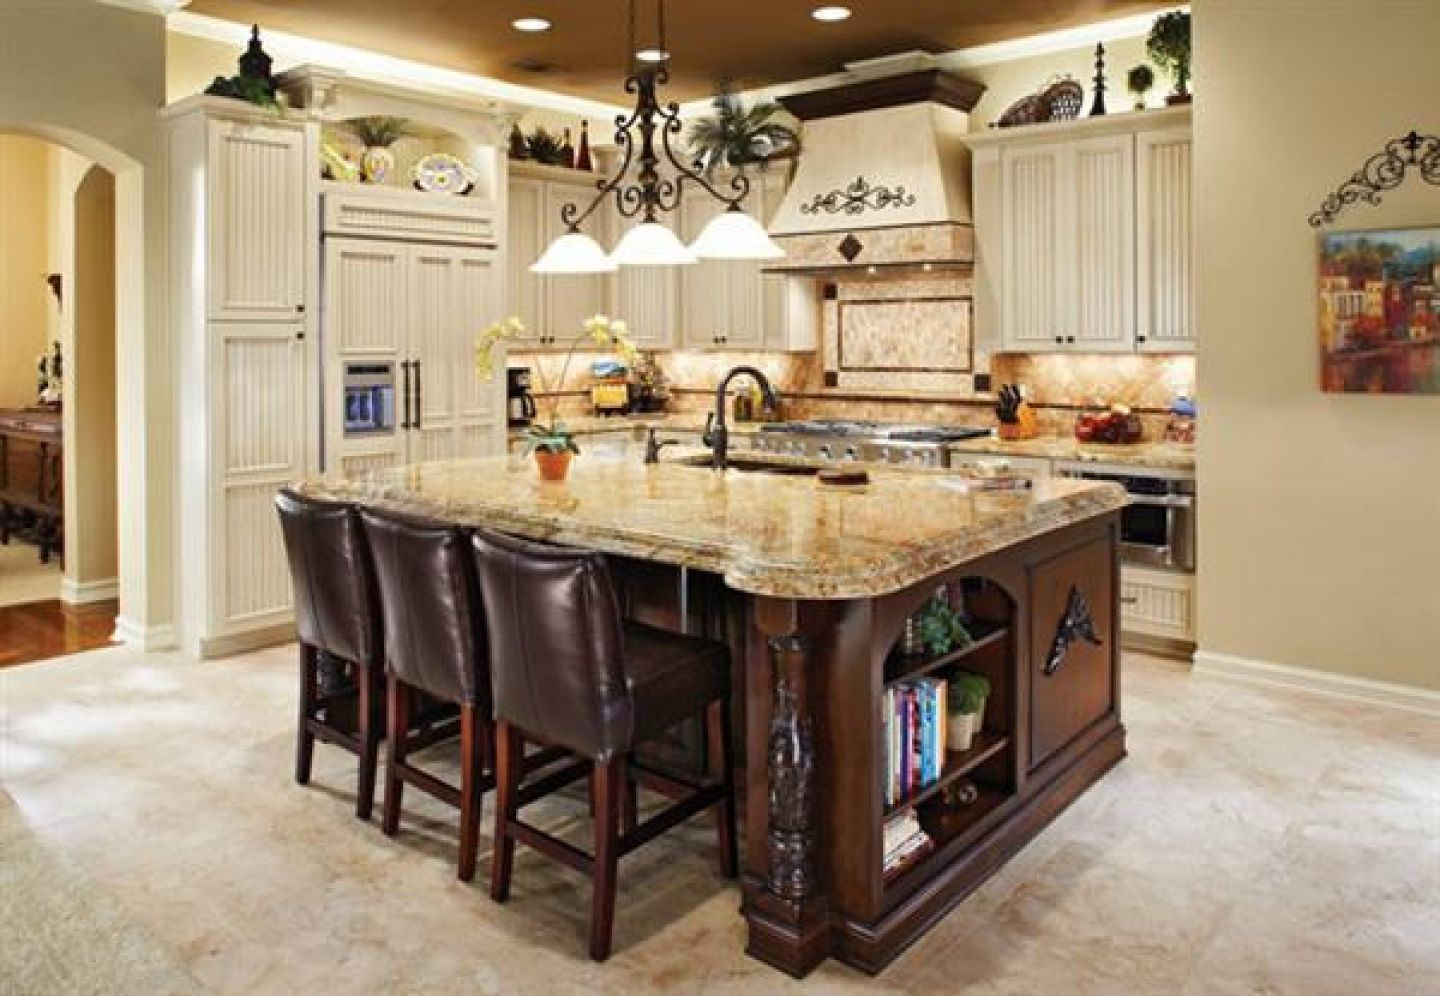 Formal Country Kitchen Cabinets Kitchens Designed In The Formal Country  Style Use Open Cabinets Painted In